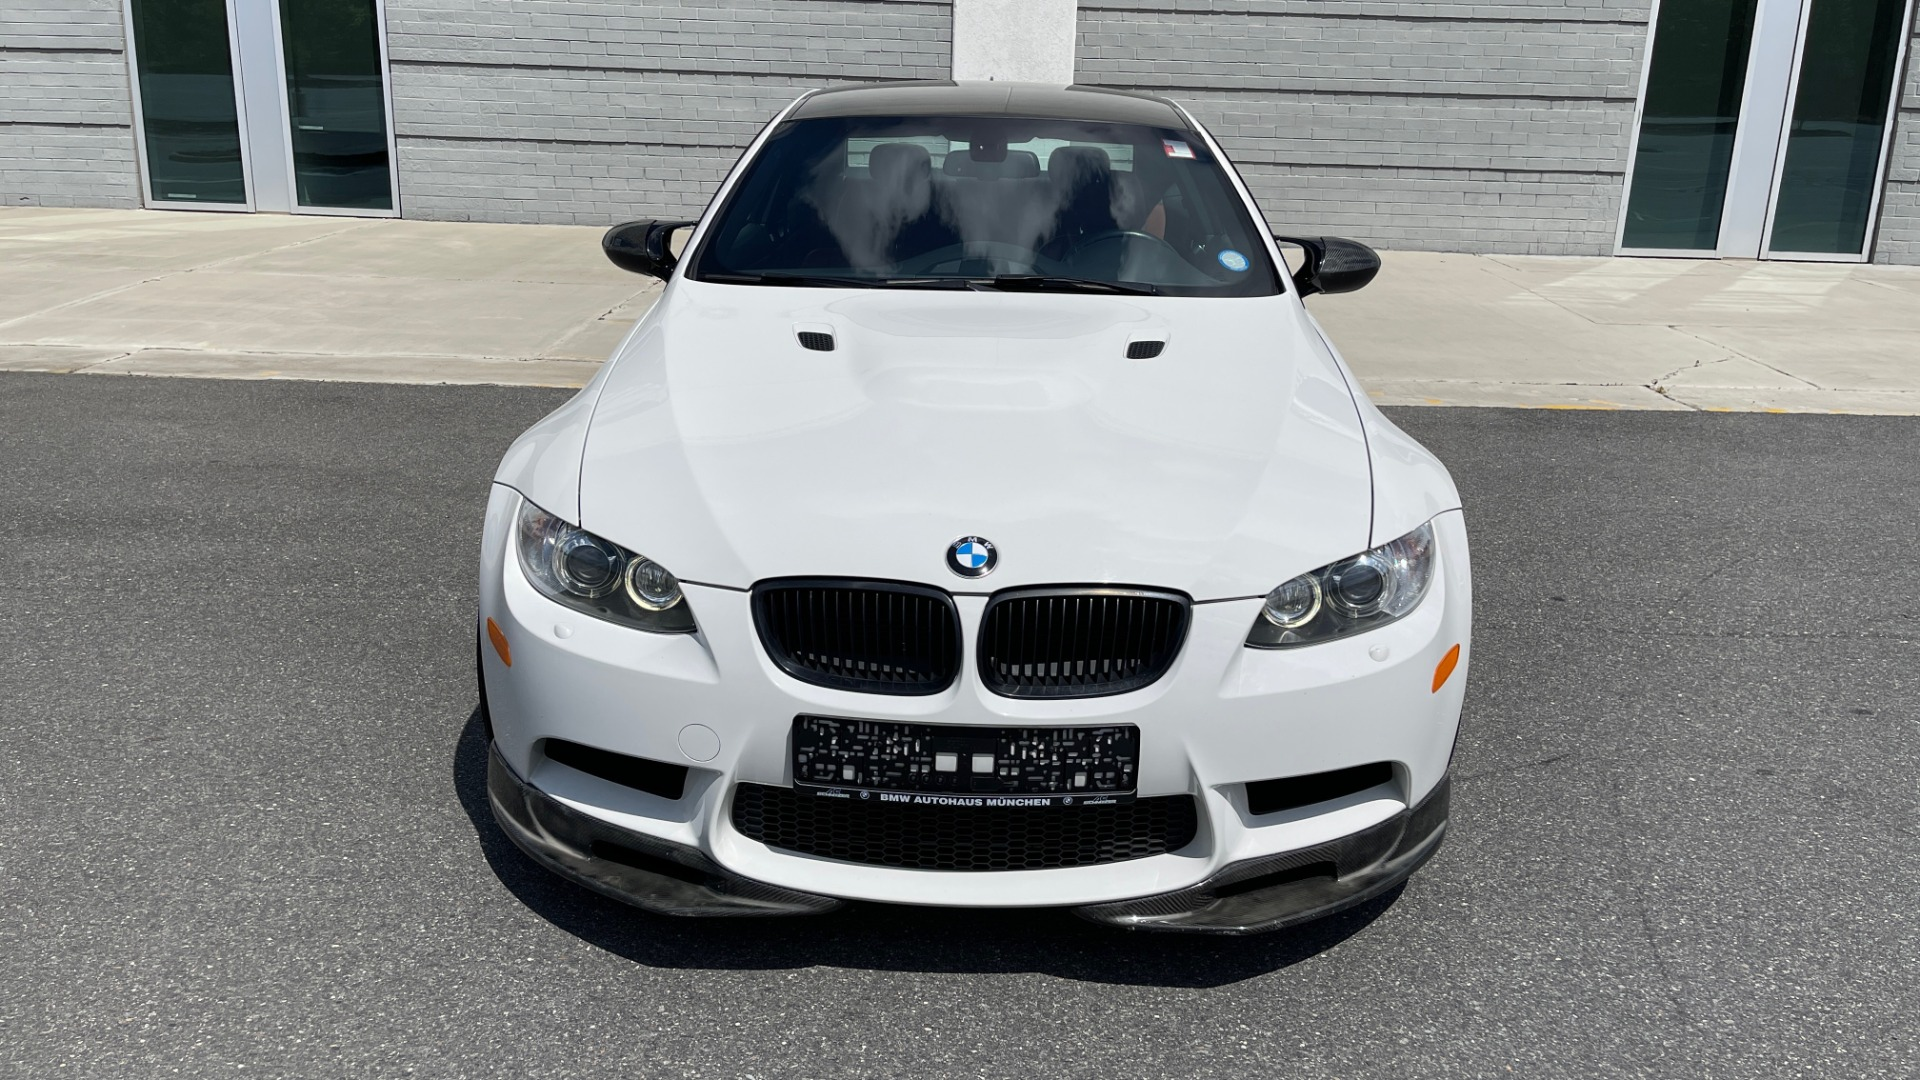 Used 2011 BMW M3 PREMIUM COUPE / CLD WTHR / TECH / SMARTPHONEINT / PARK ASST for sale Sold at Formula Imports in Charlotte NC 28227 19